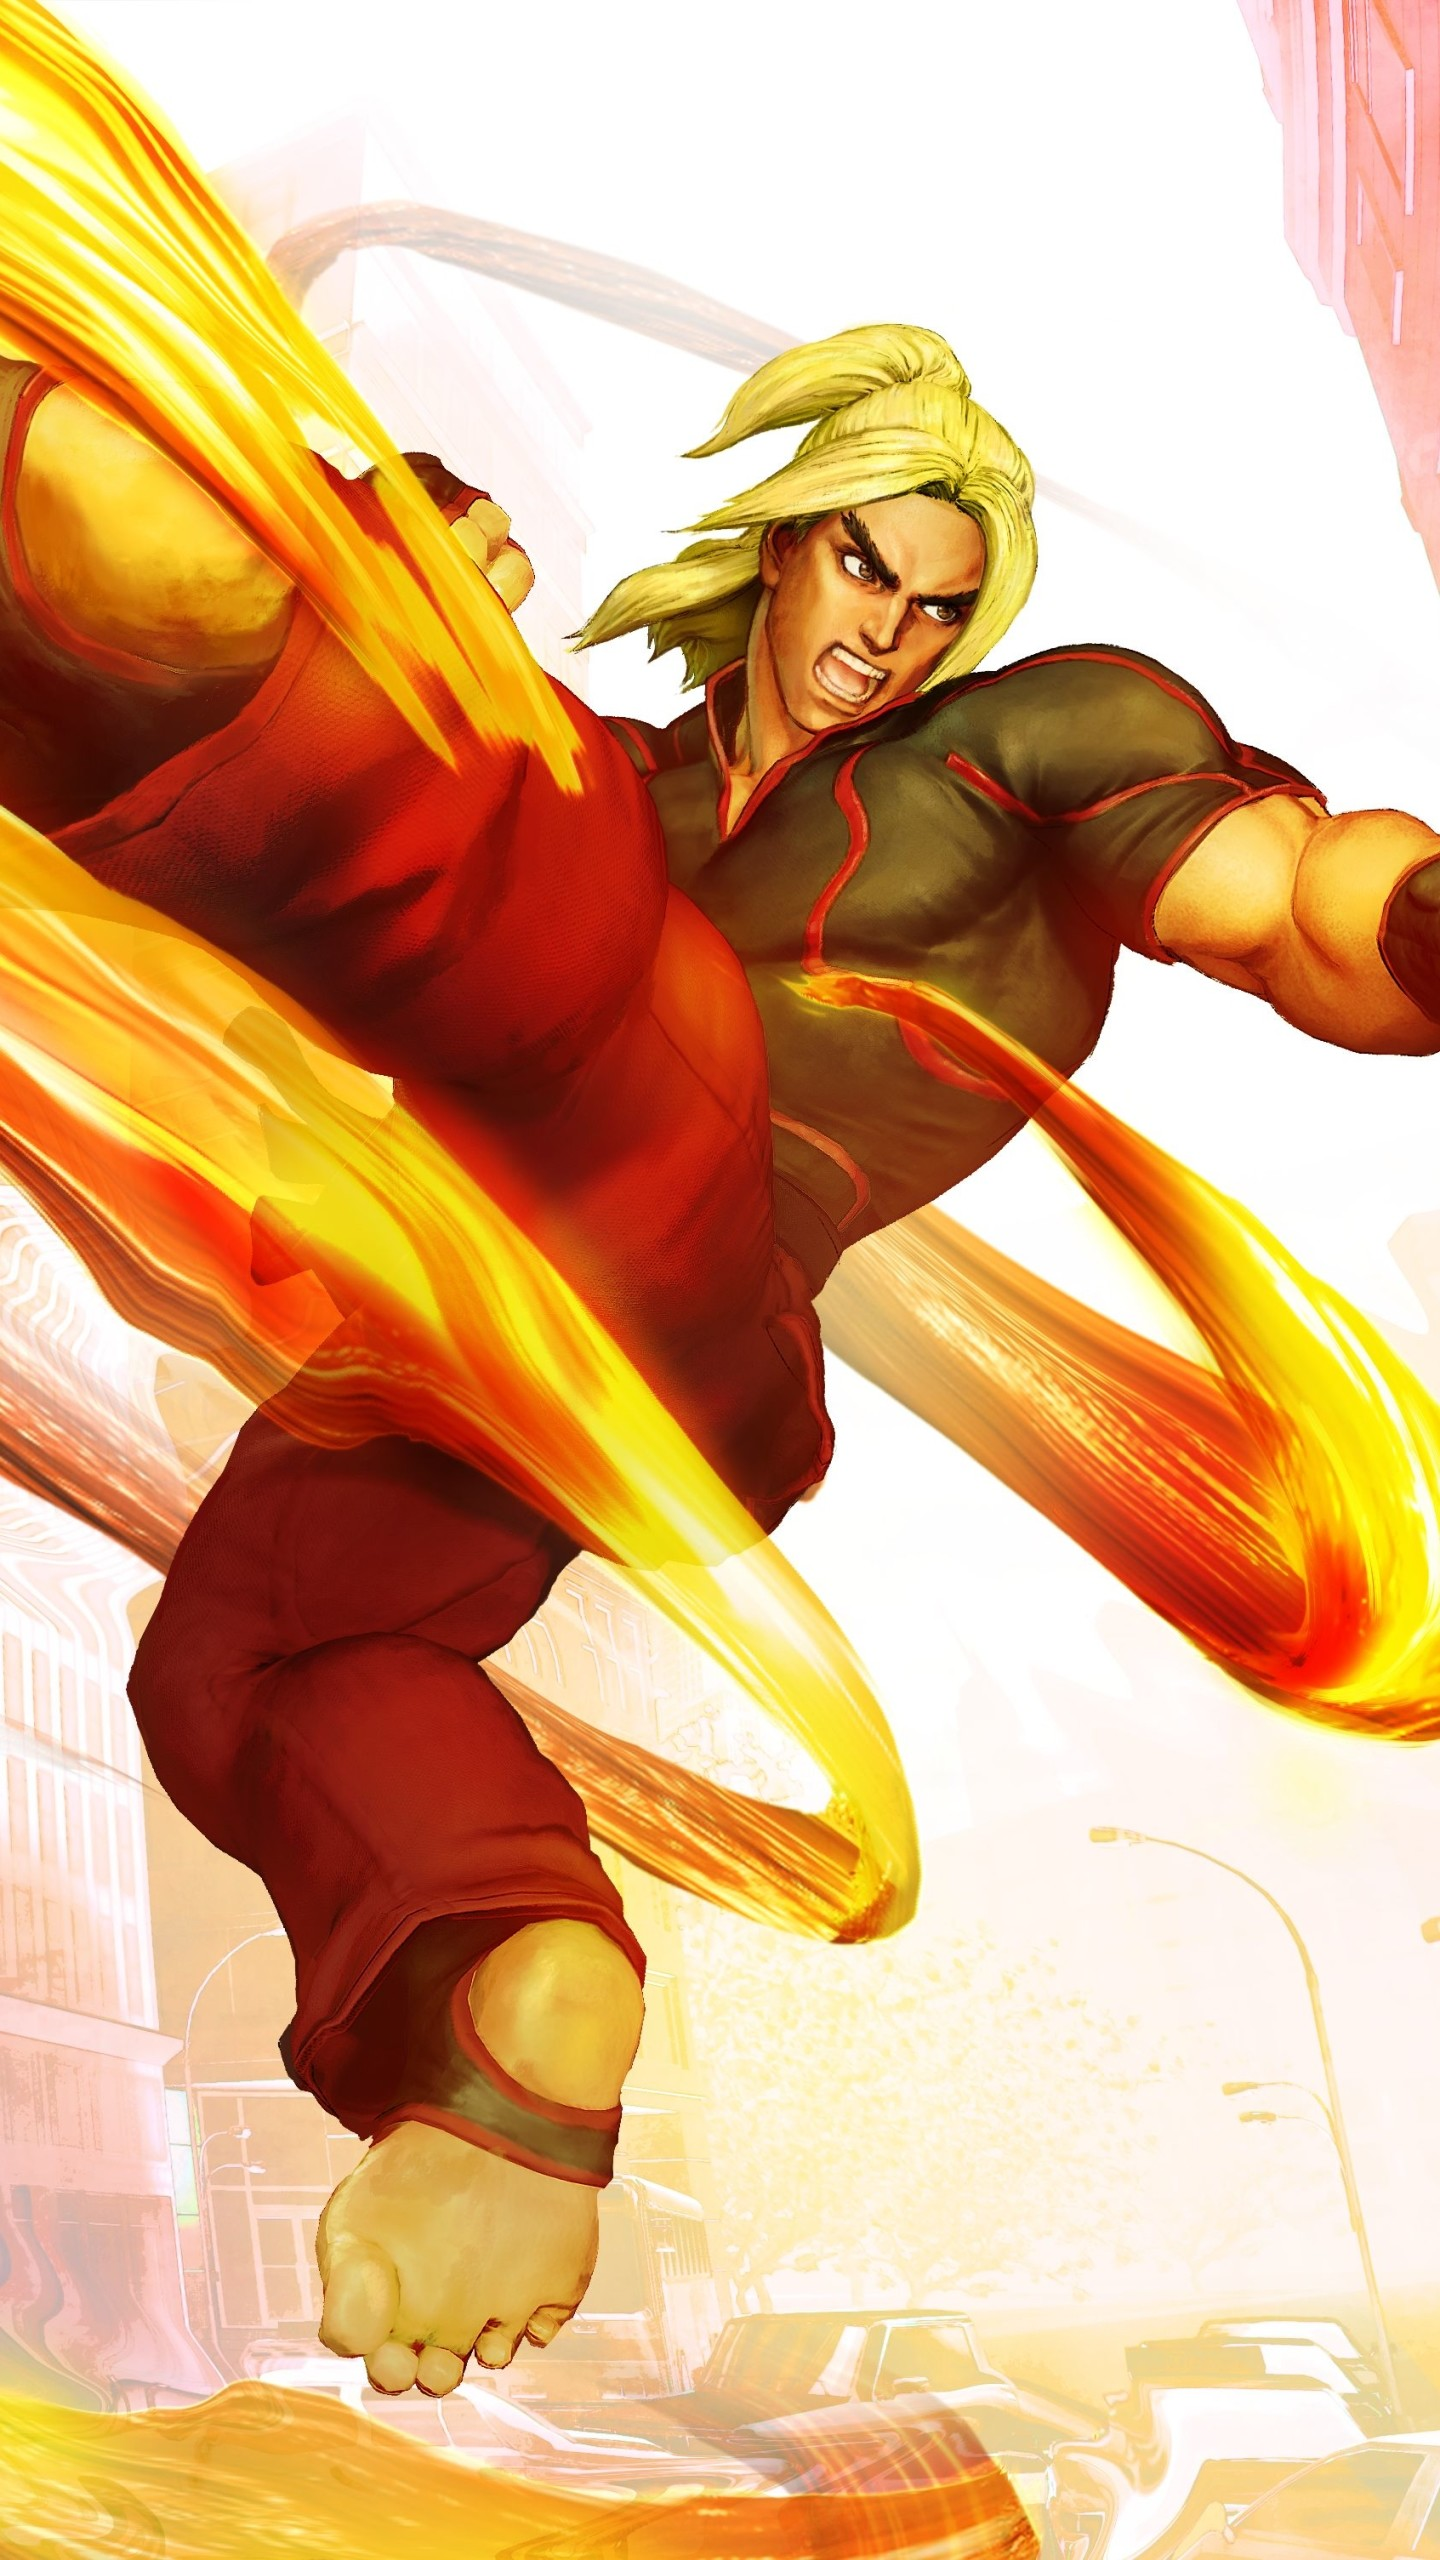 Hd Supreme Wallpaper Iphone X Street Fighter V Wallpapers 73 Images